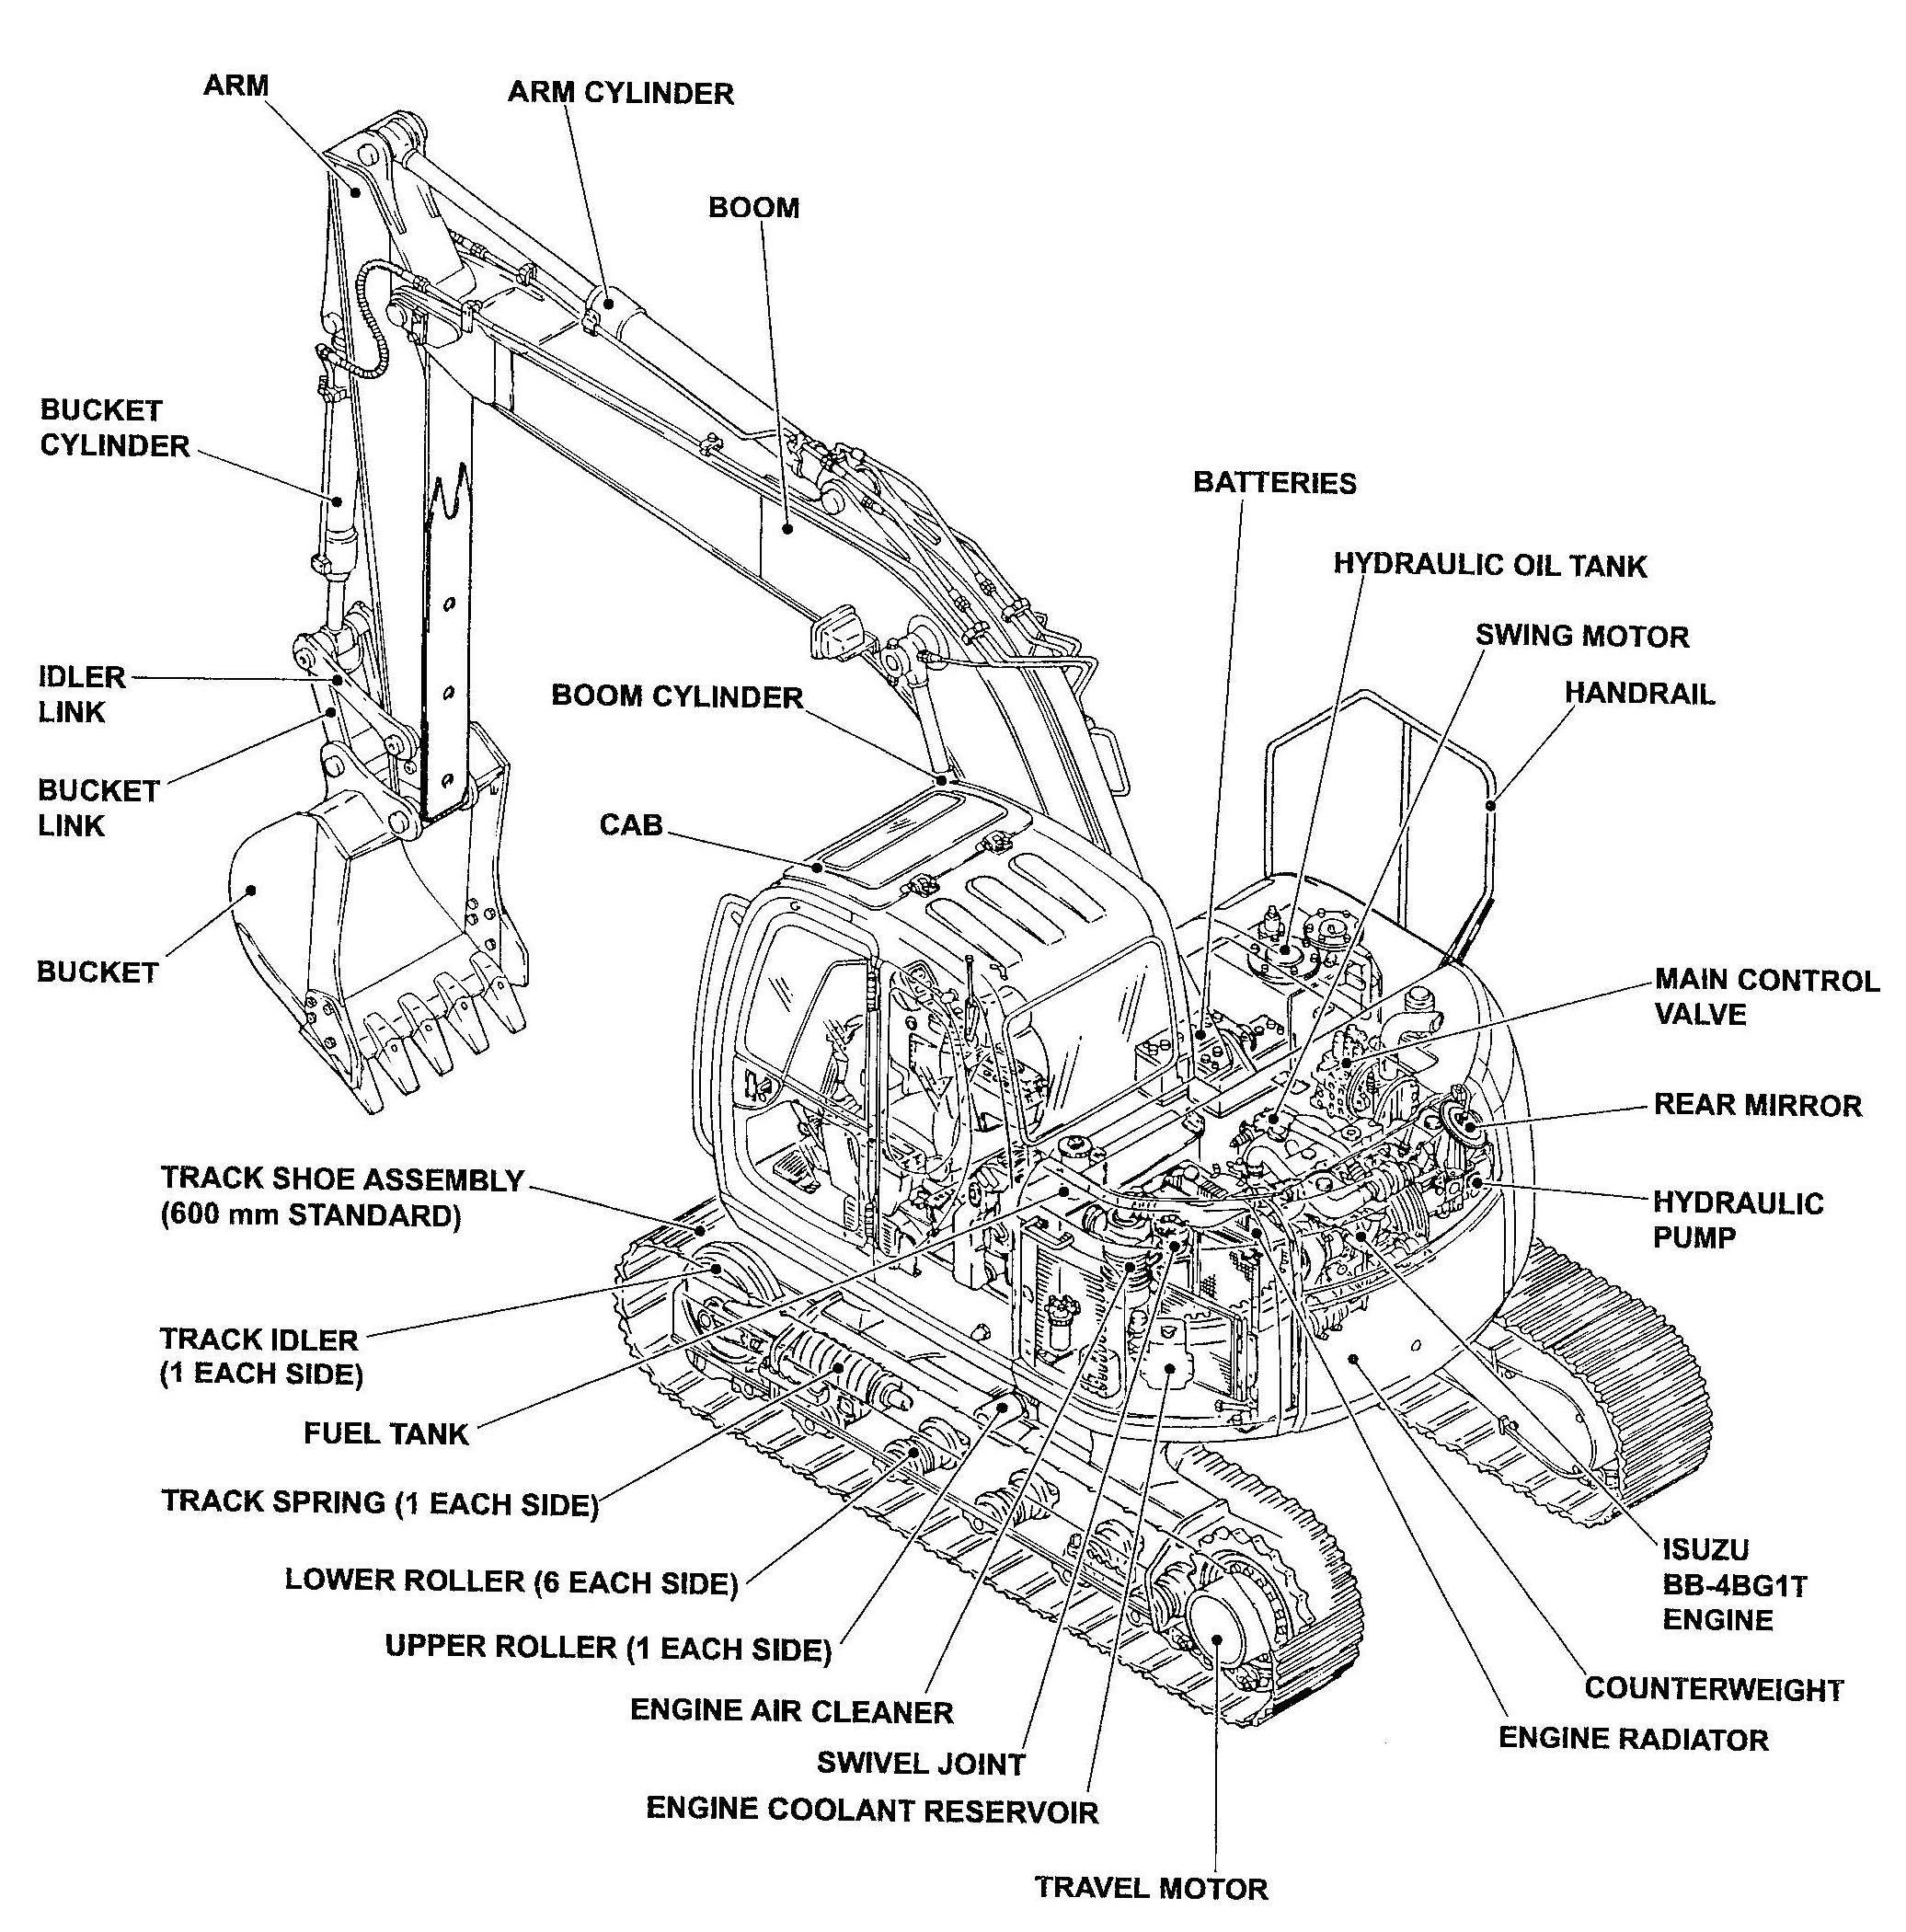 small resolution of image result for crawler excavator diagram volvo diagram cars and motorcycles craft projects